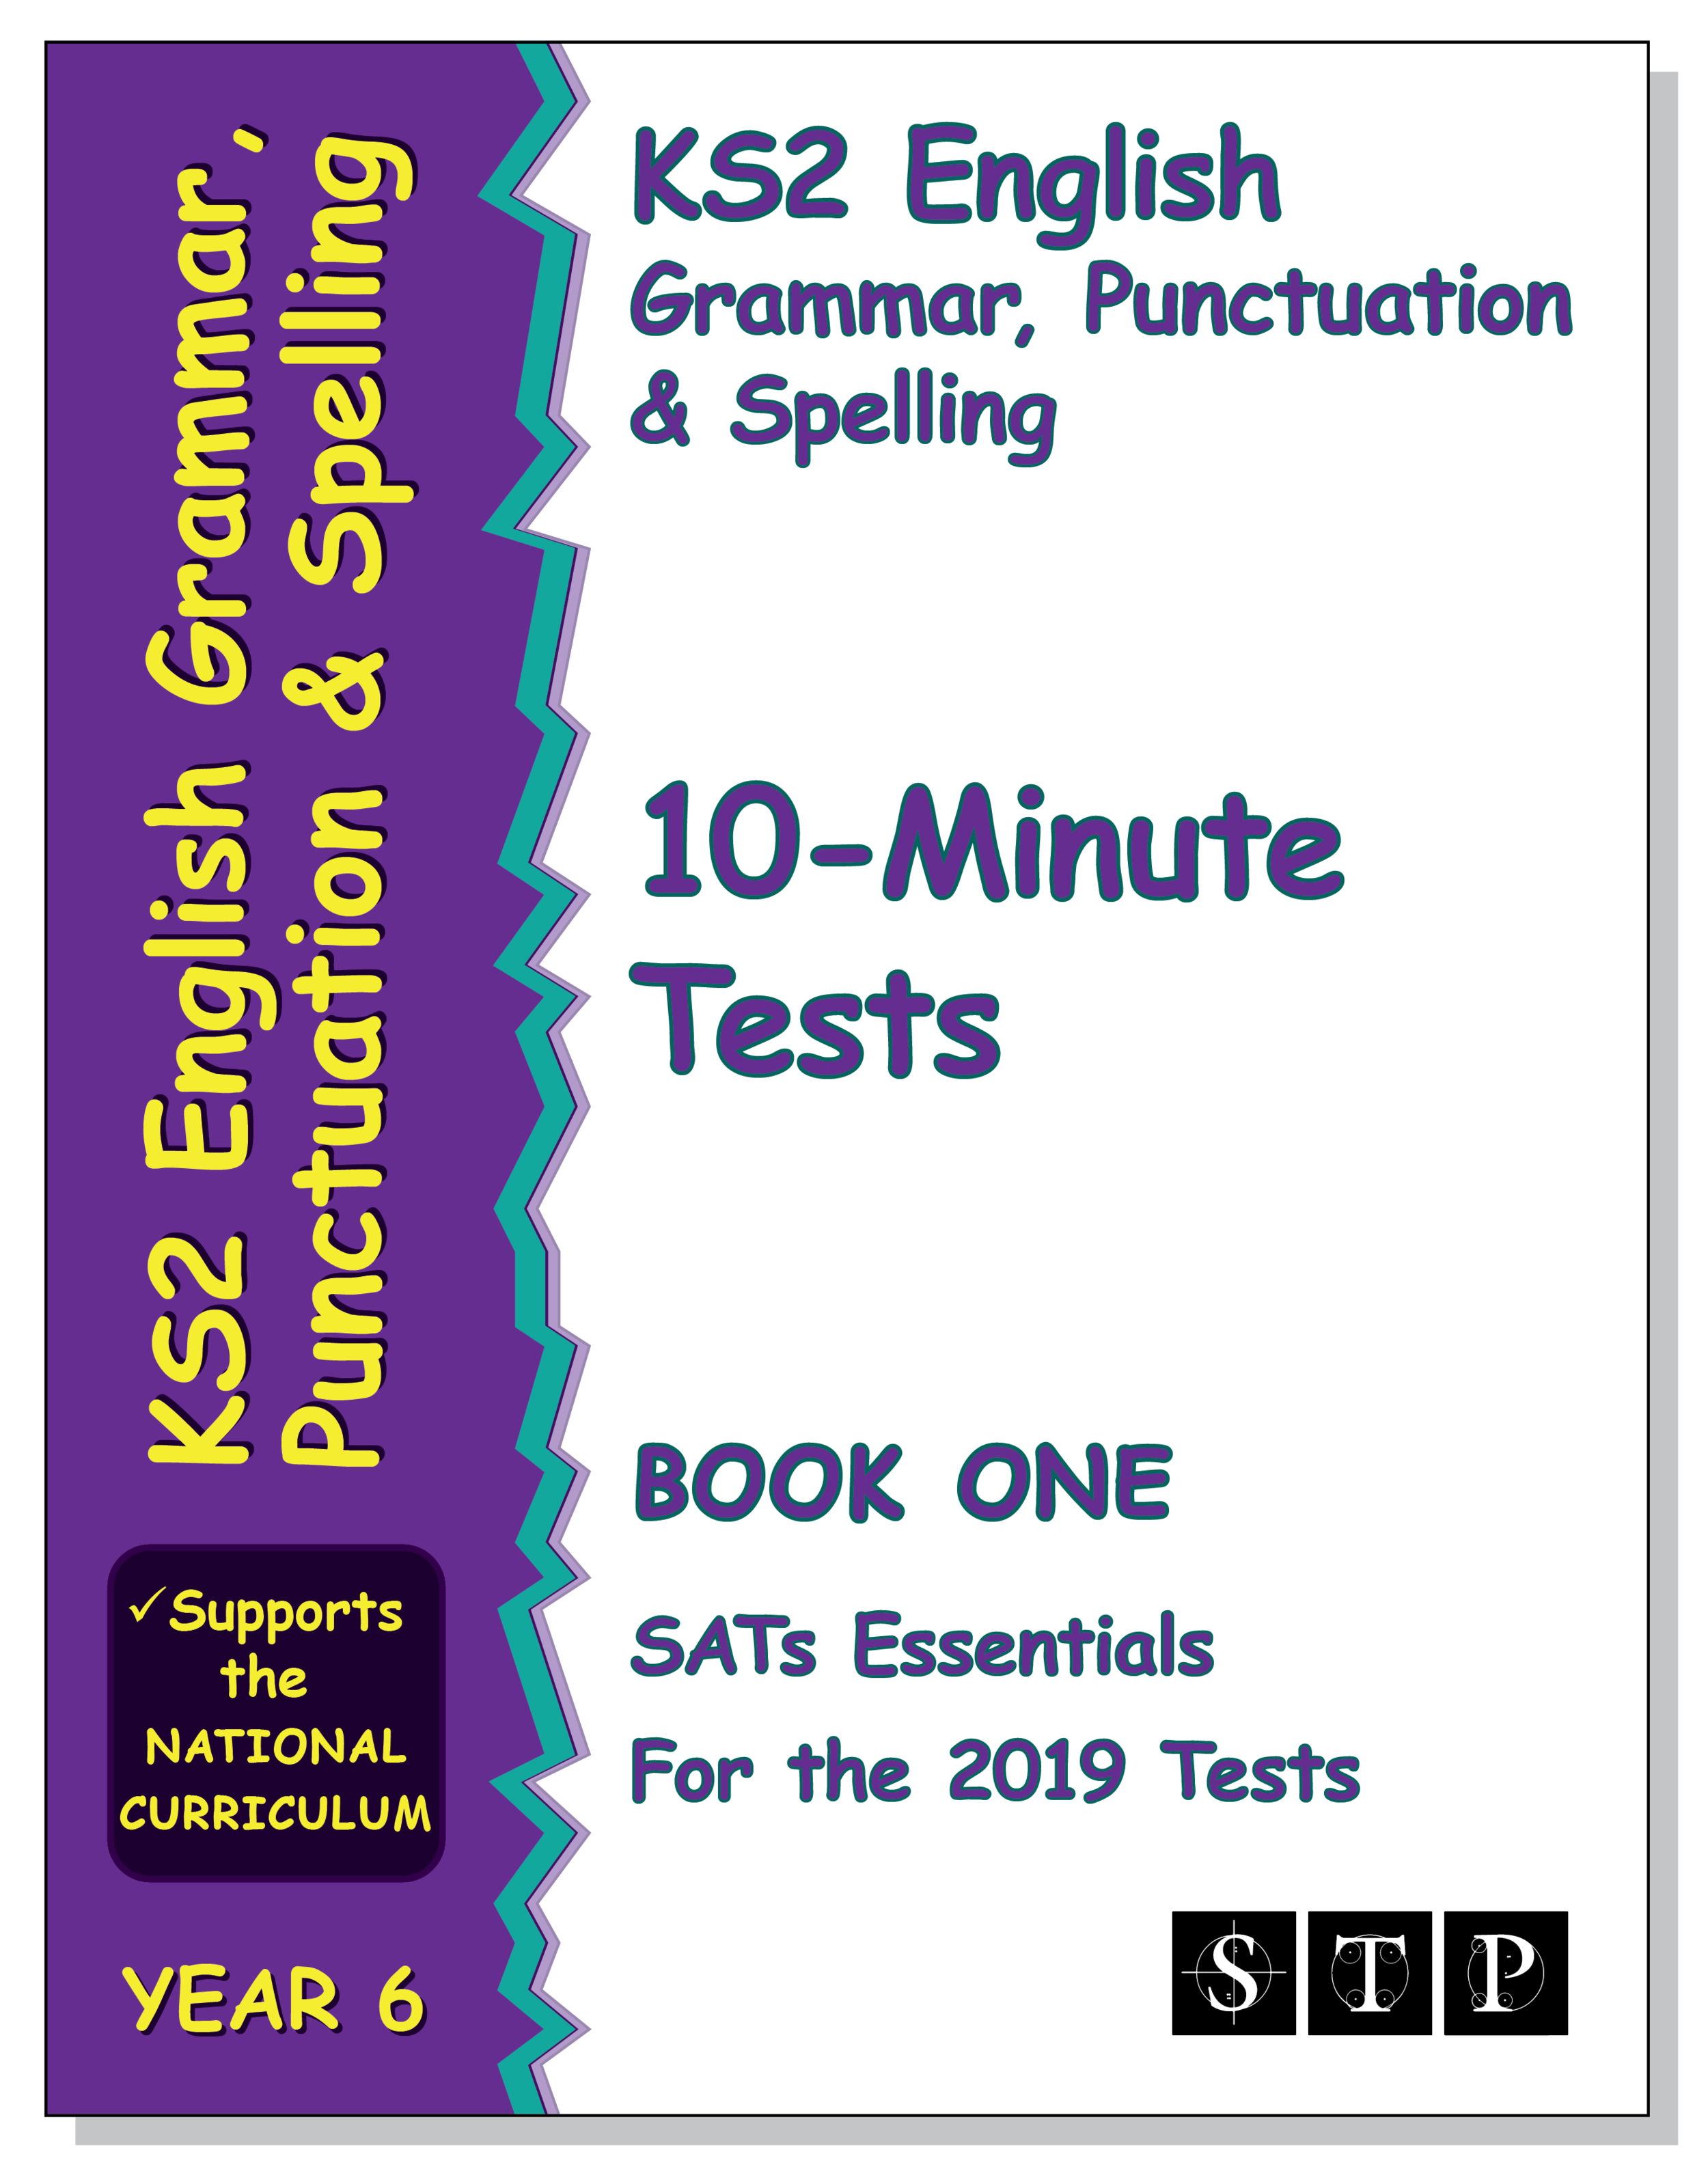 STP Books KS2 English Grammar, Punctuation and Spelling 10-Minute Tests for the 2019 Tests – Book One (Year 6) (STP KS2 English SATs Essentials)